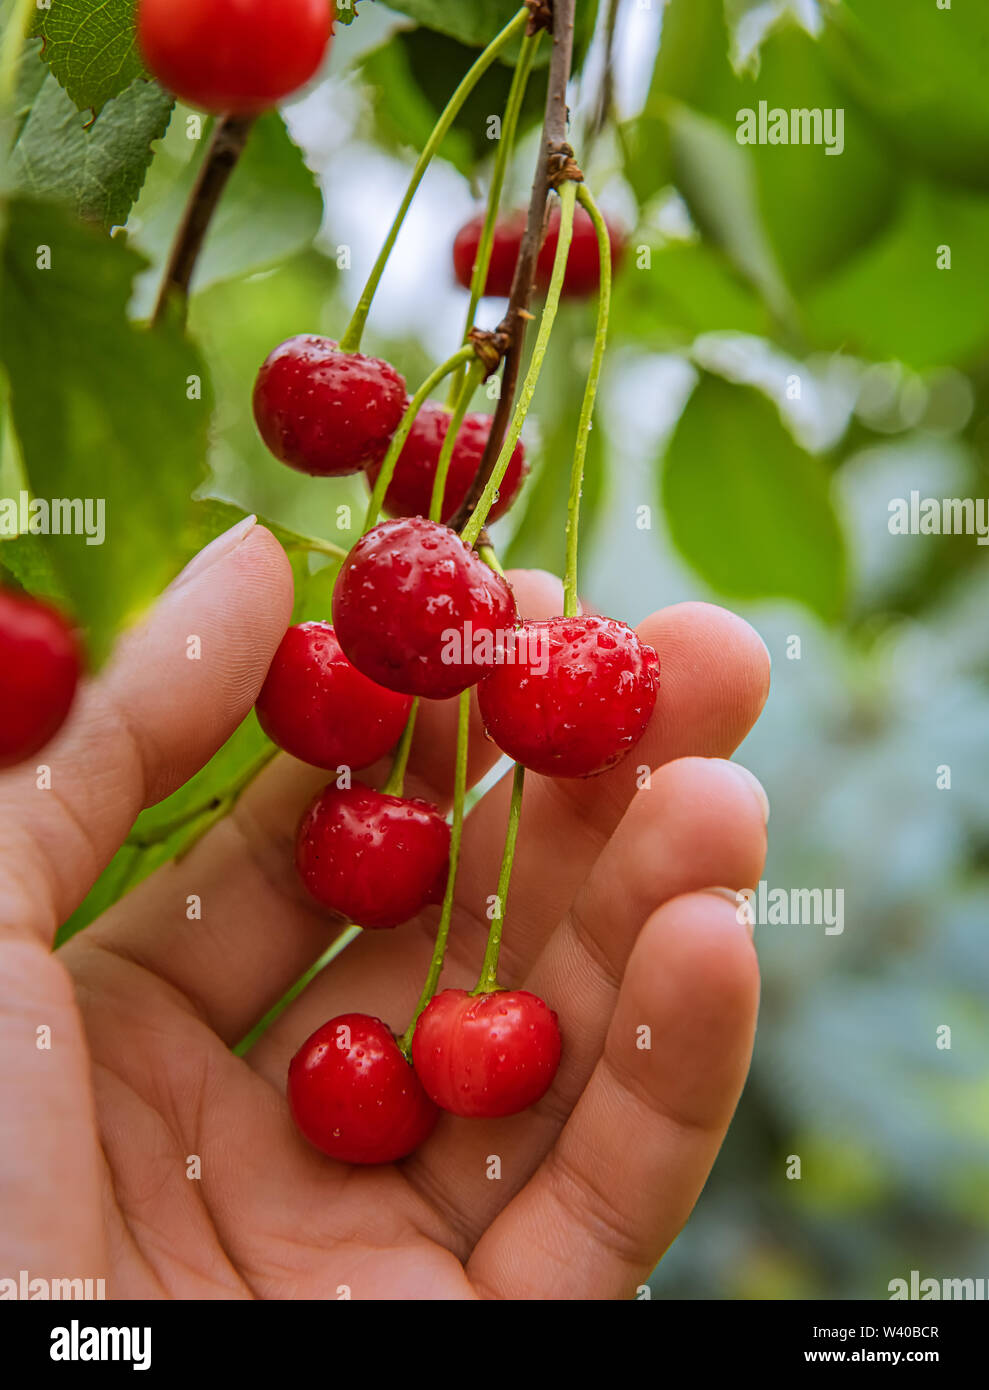 Bunch of few fresh ripe organic bright red cherries on tree branch. Fruits are in farmer's hand, surrounded by green leaves and covered by water drops - Stock Image